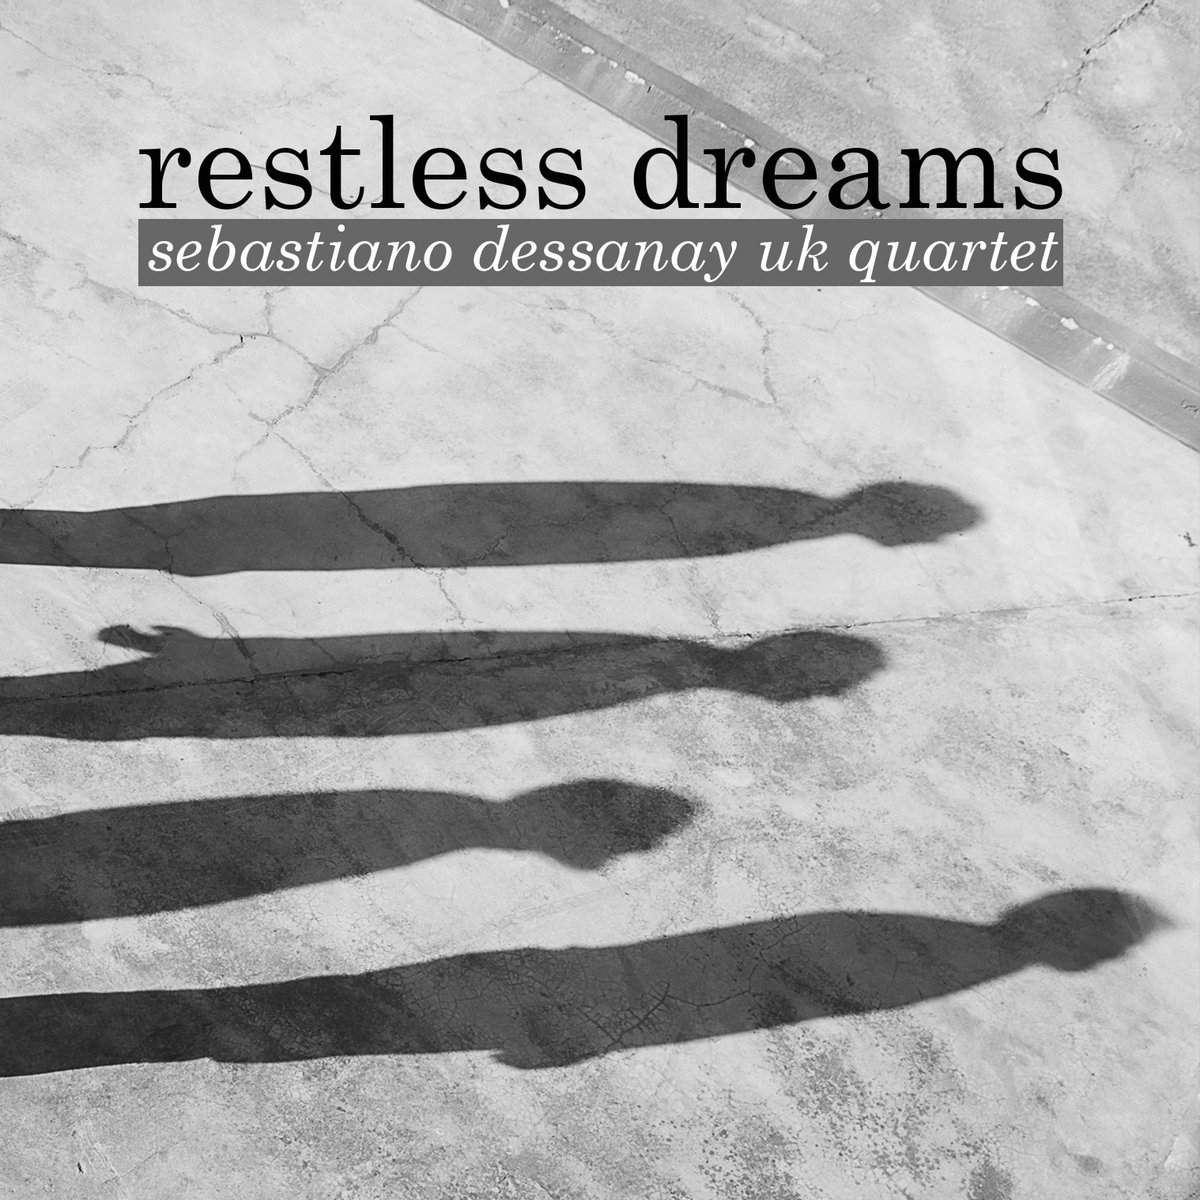 Restless Dreams Sebastiano Dessanay Uk Quartet